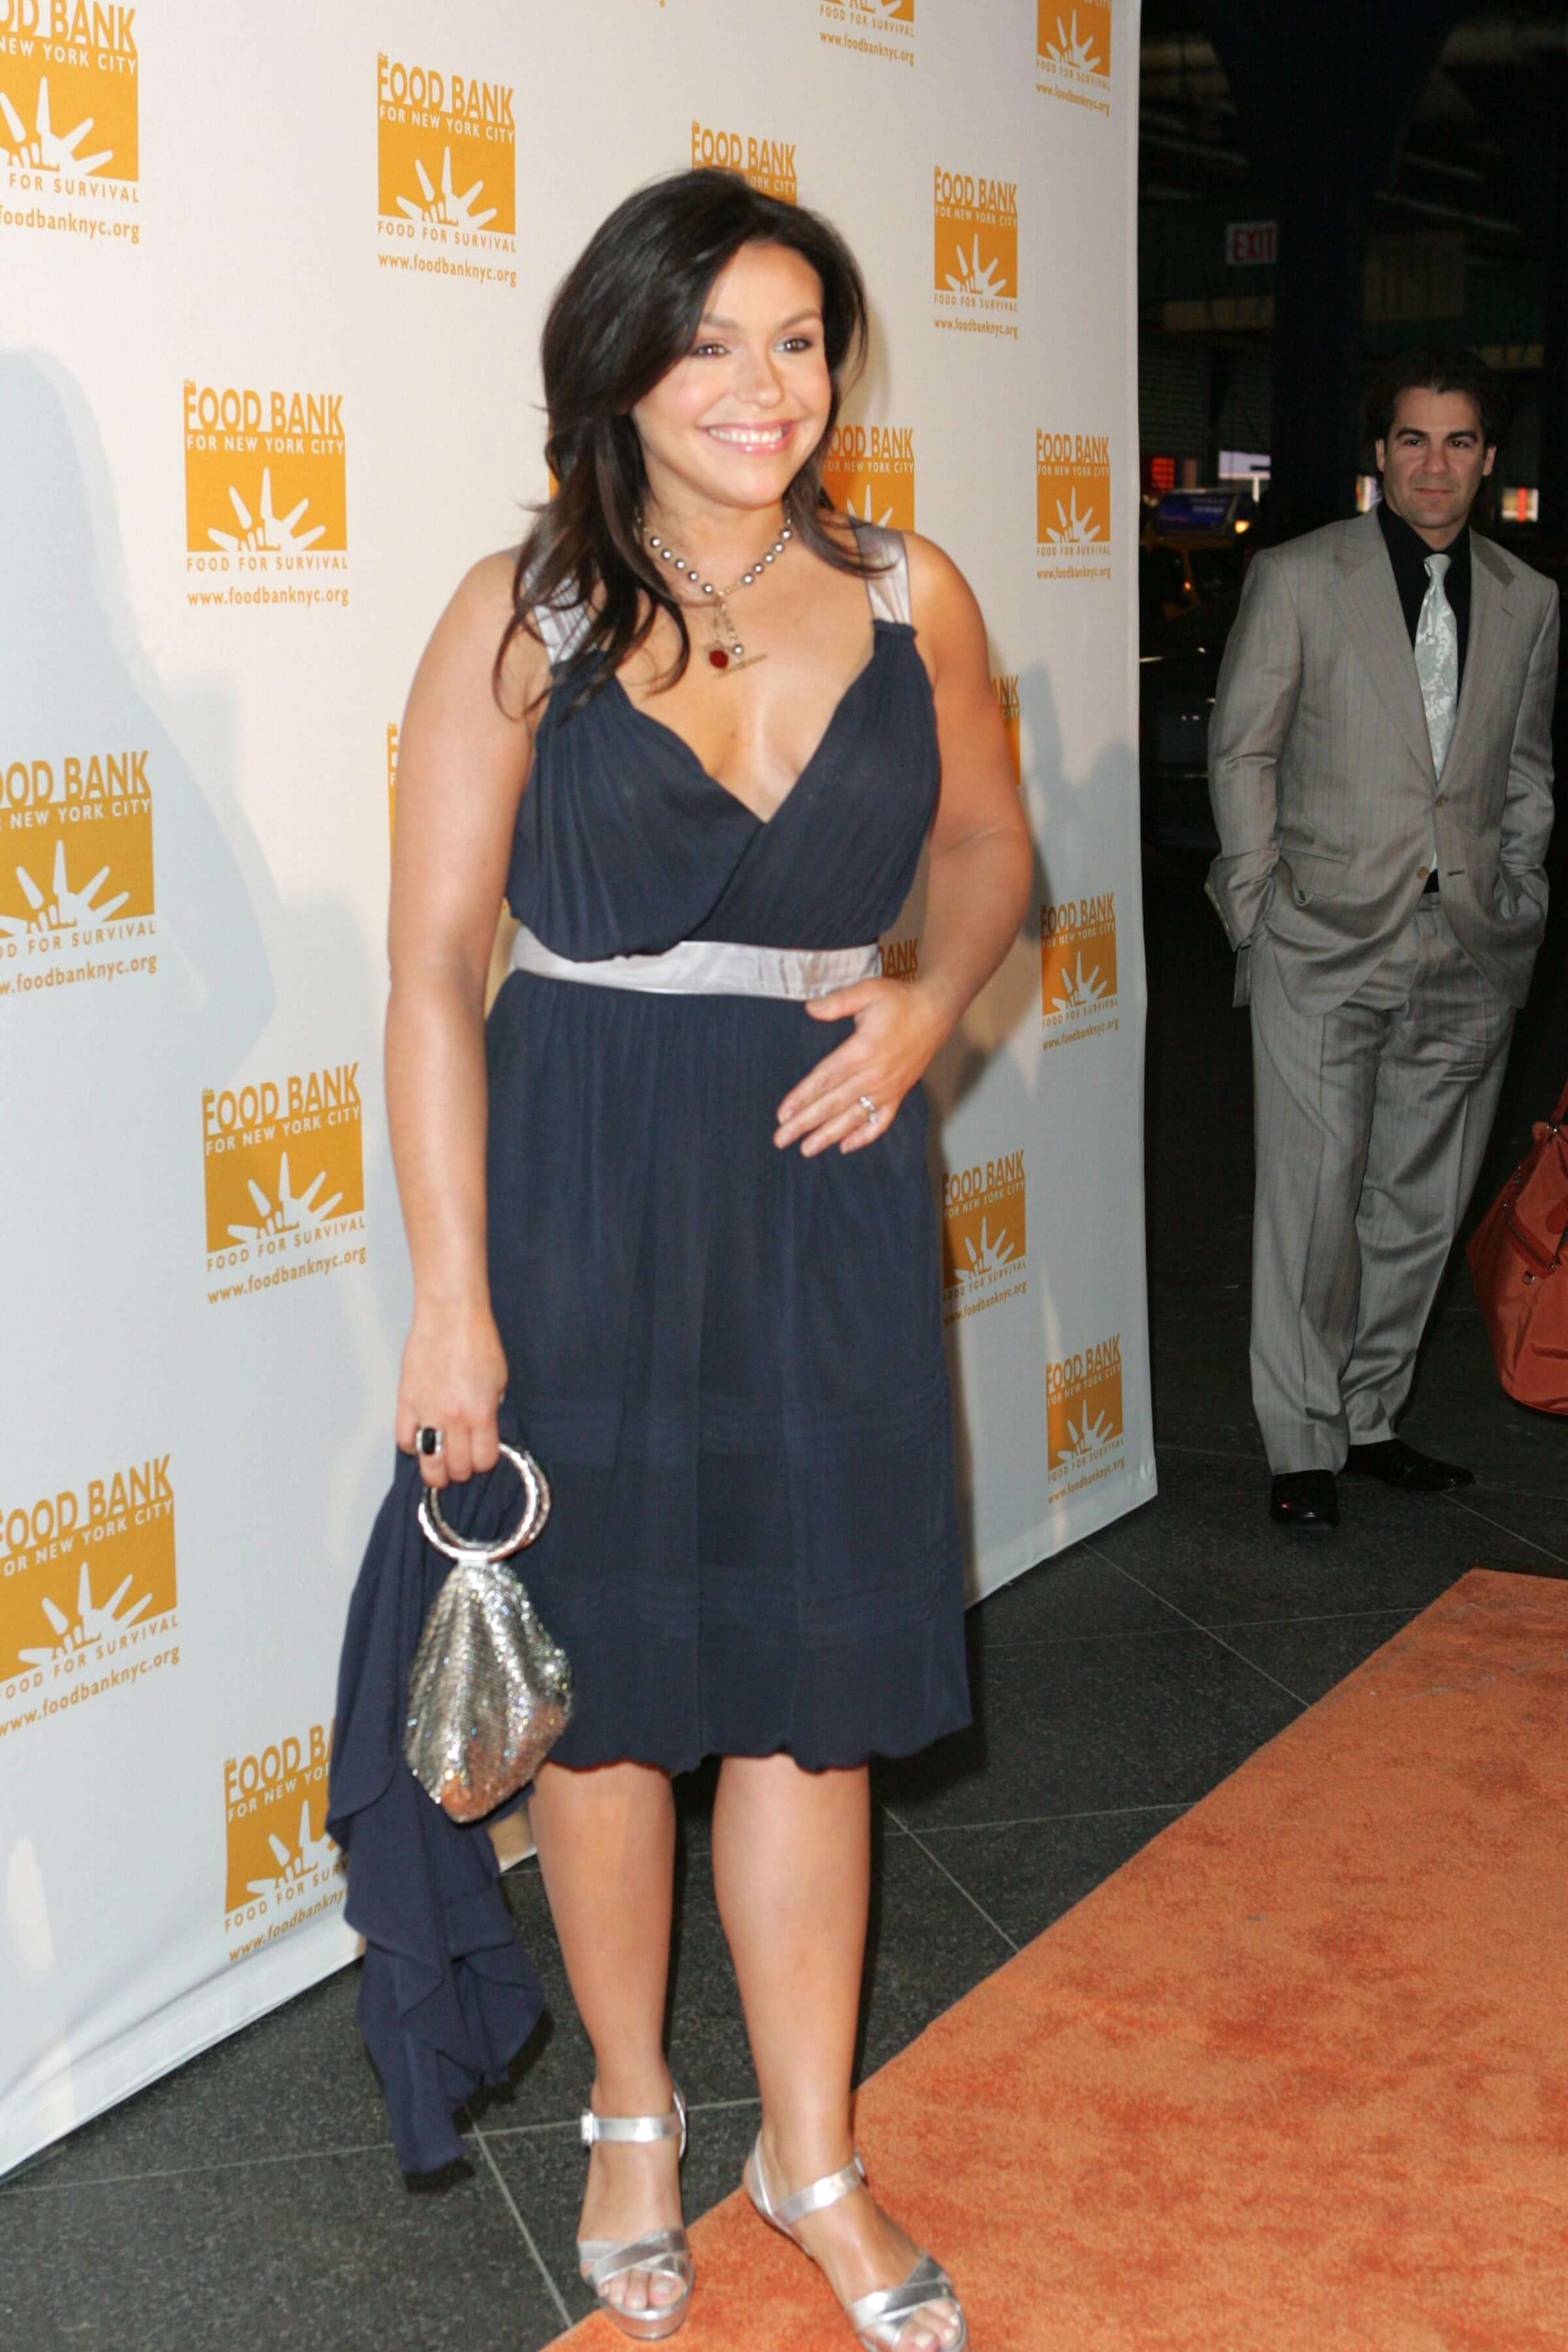 30 Sexy Rachael Ray Feet Pictures Are Too Much For You To Handle